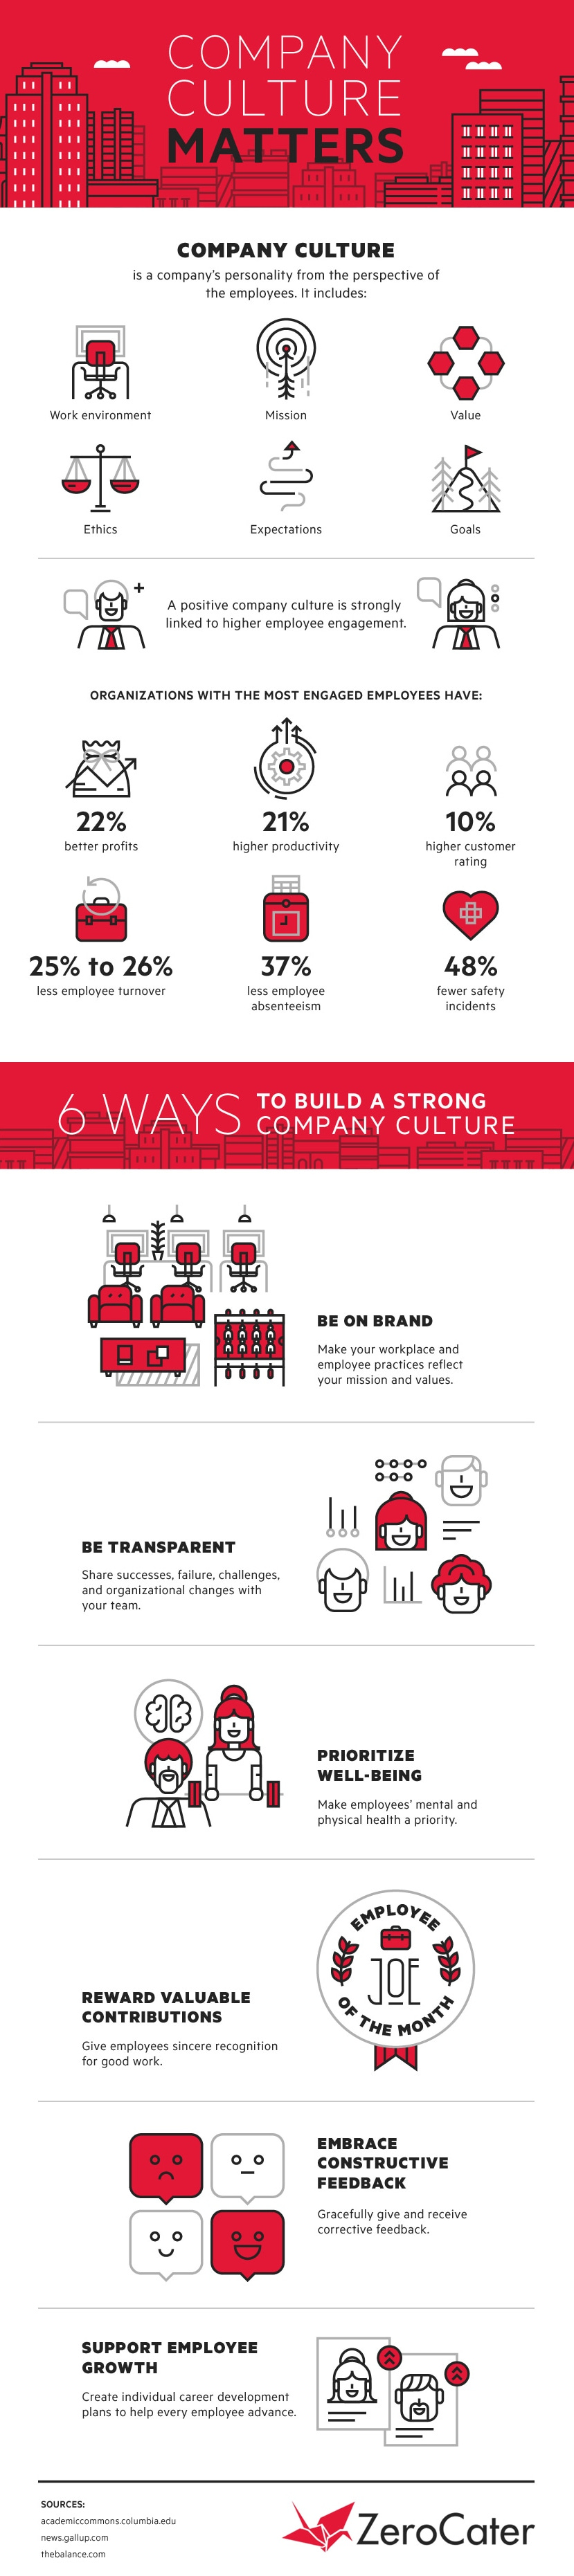 How to Build a Strong Company Culture